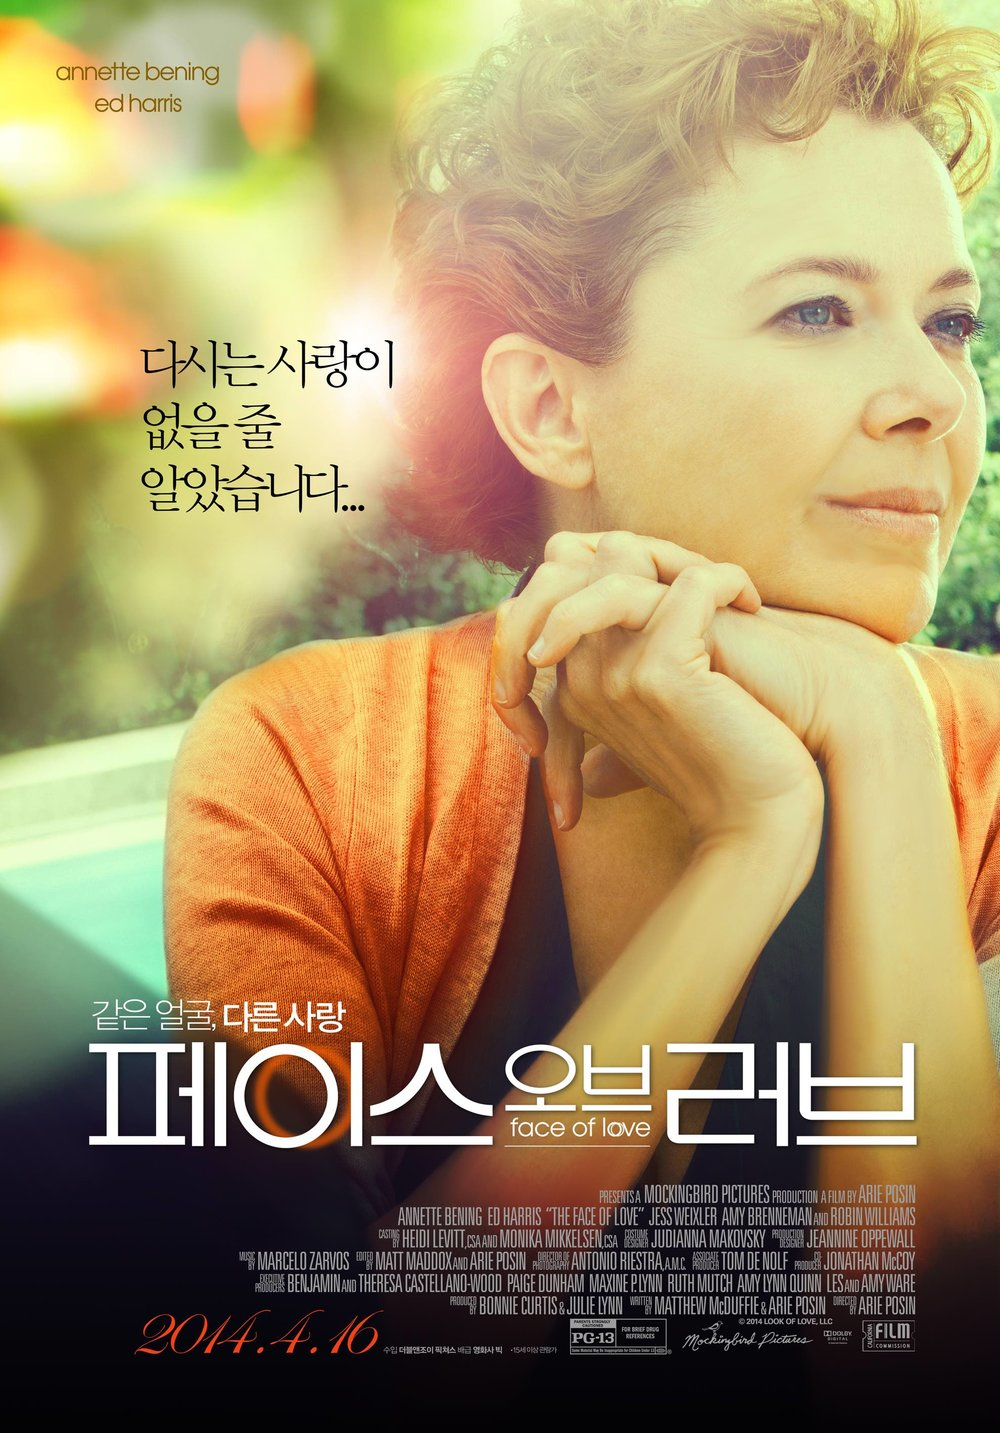 Theatrical release poster for Korea. My favorite international poster.